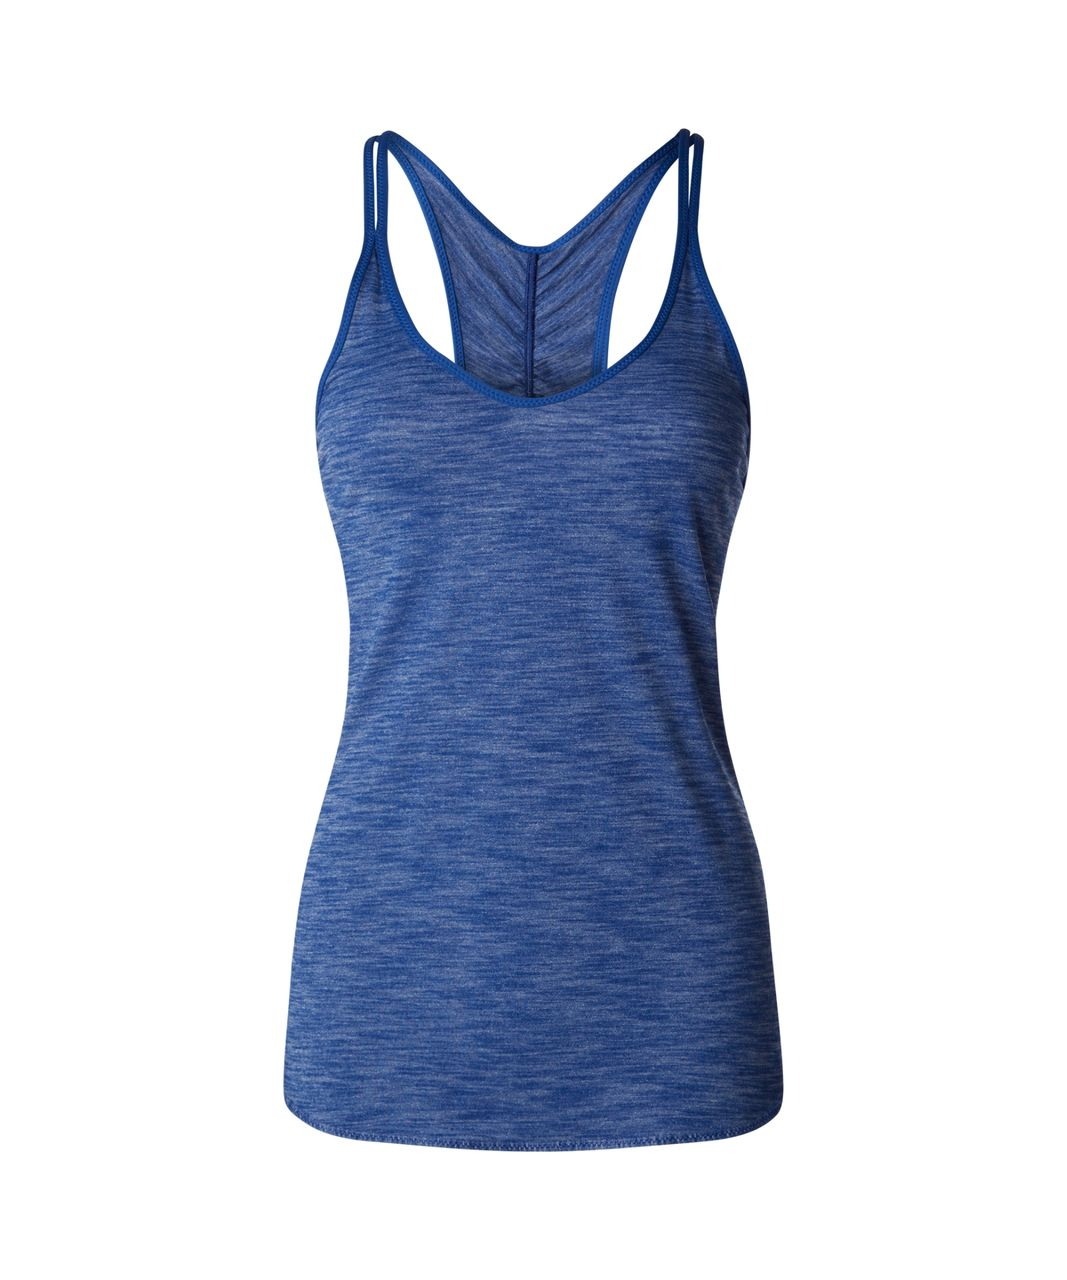 Lululemon What The Sport Singlet II - Heathered Sapphire Blue